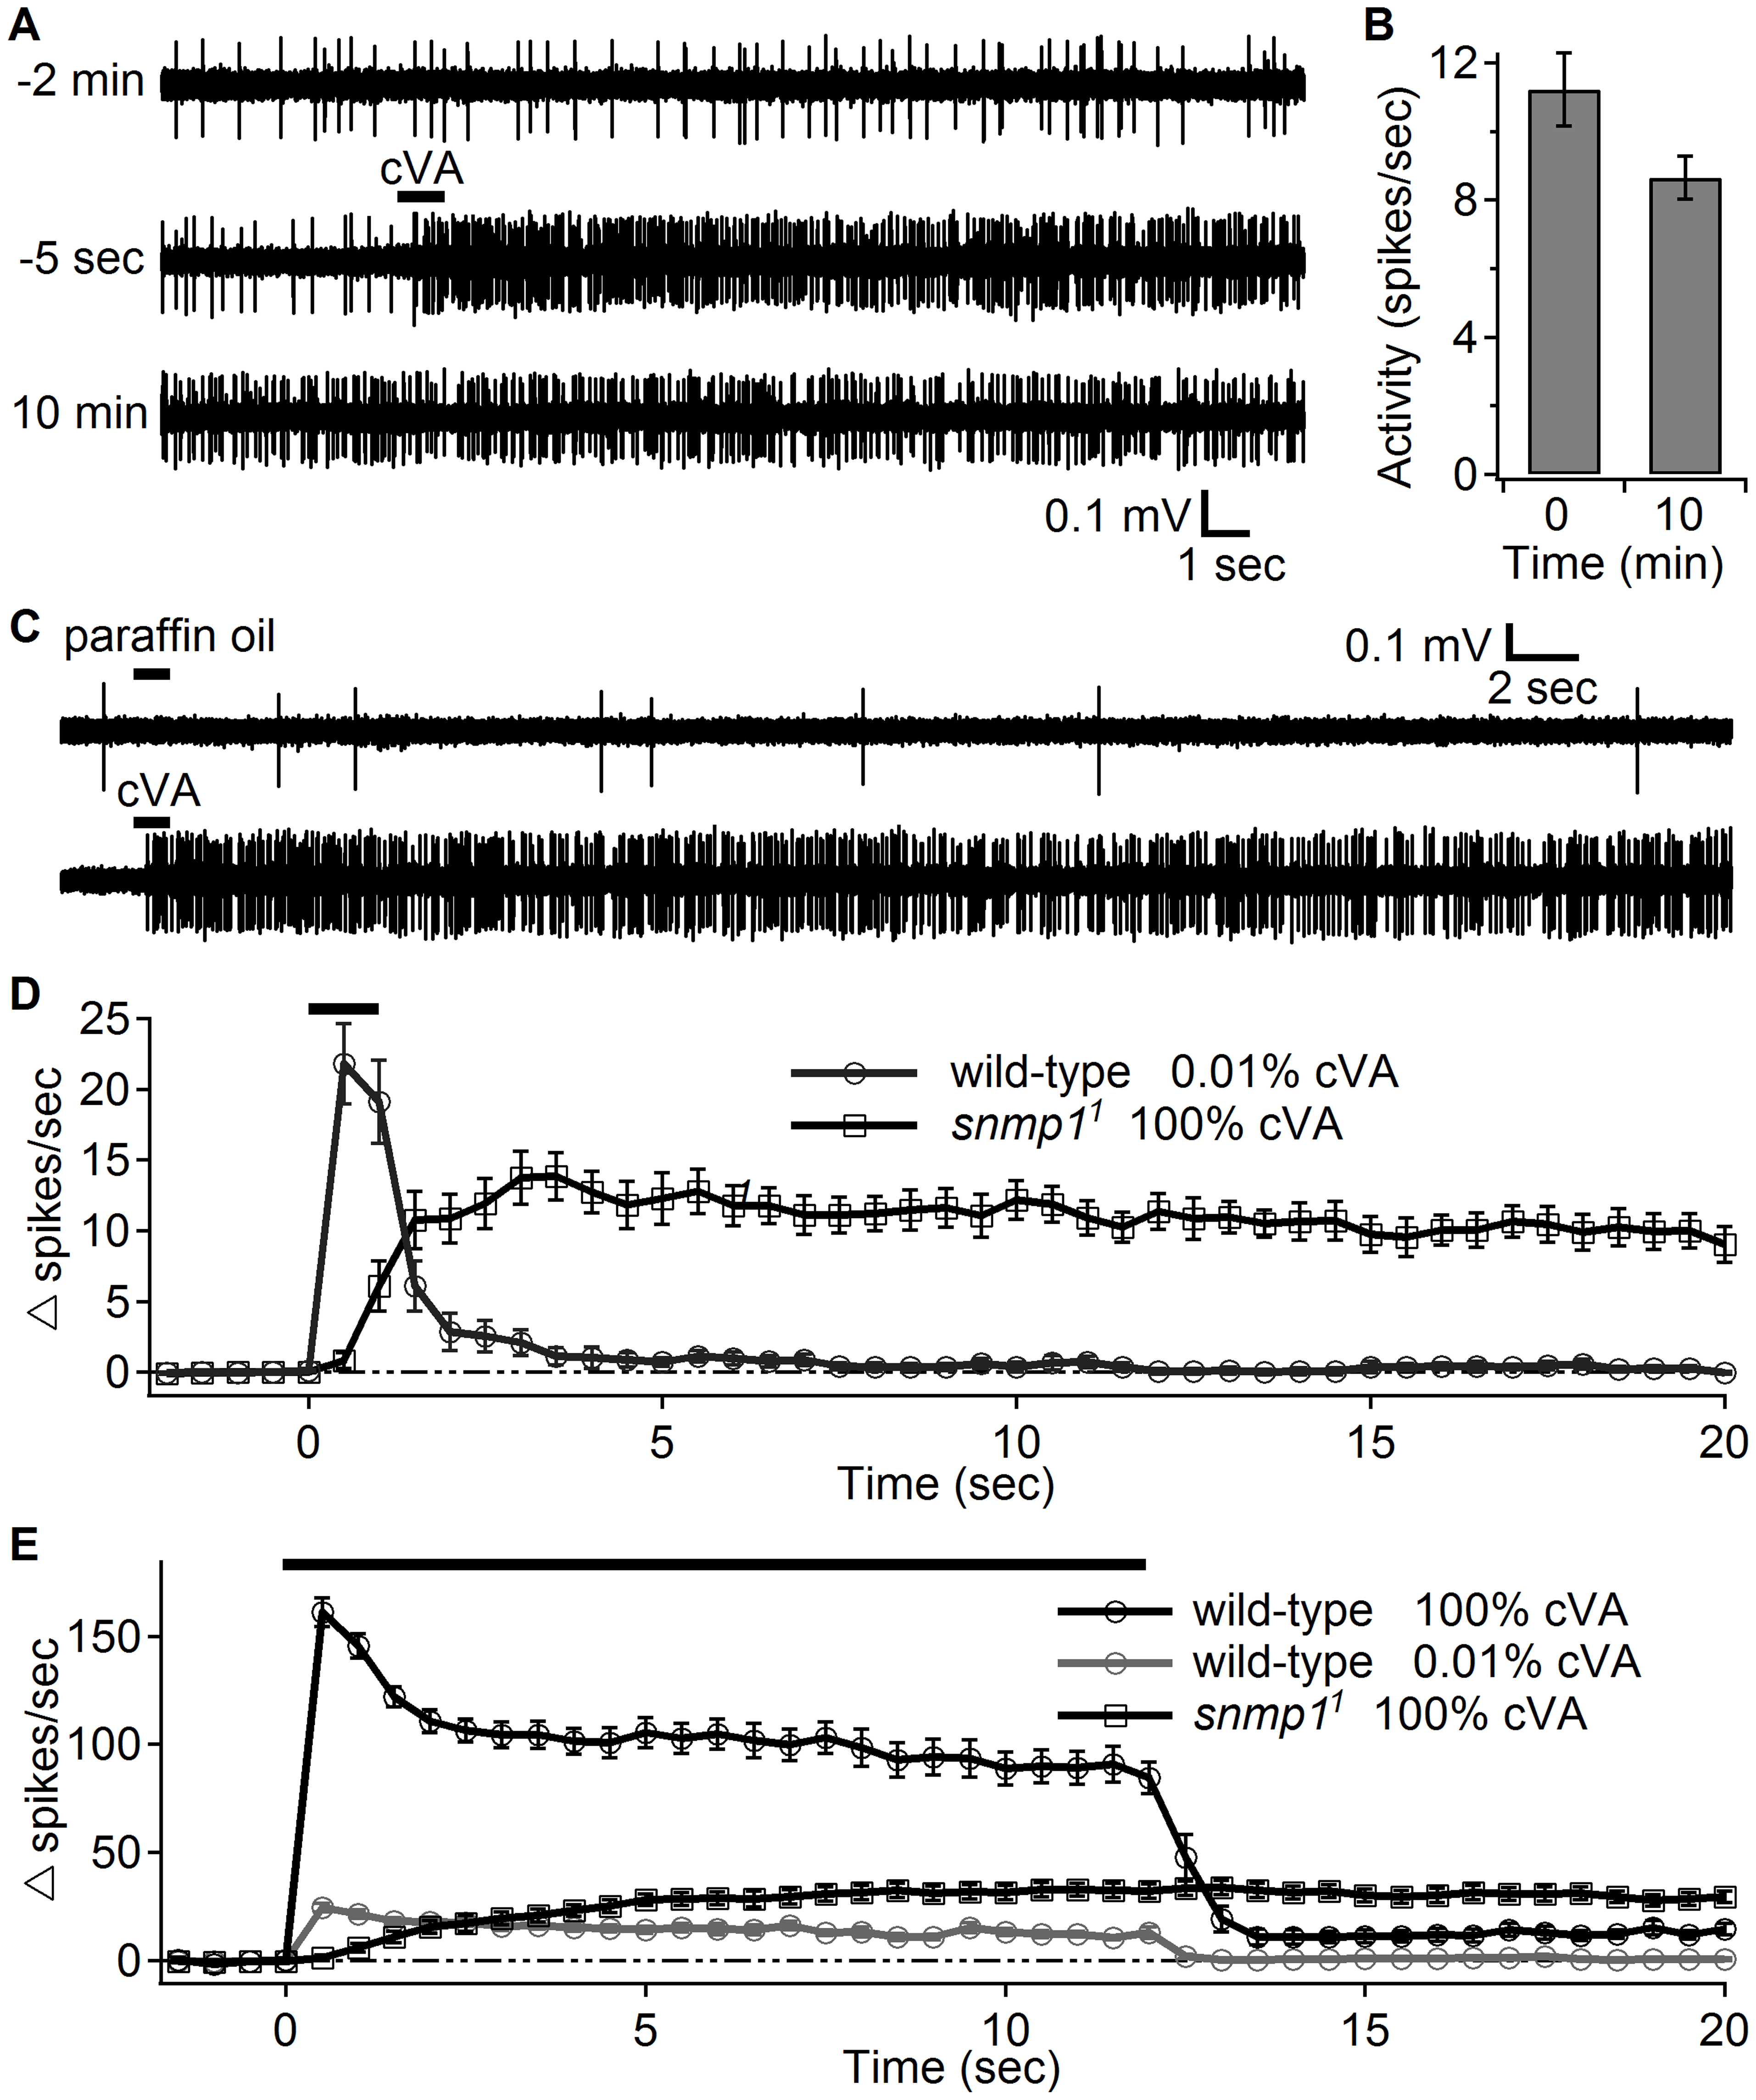 OR67d ORNs in <i>snmp1<sup>1</sup></i> females showed high neuronal activity long after transient stimulation with cVA.